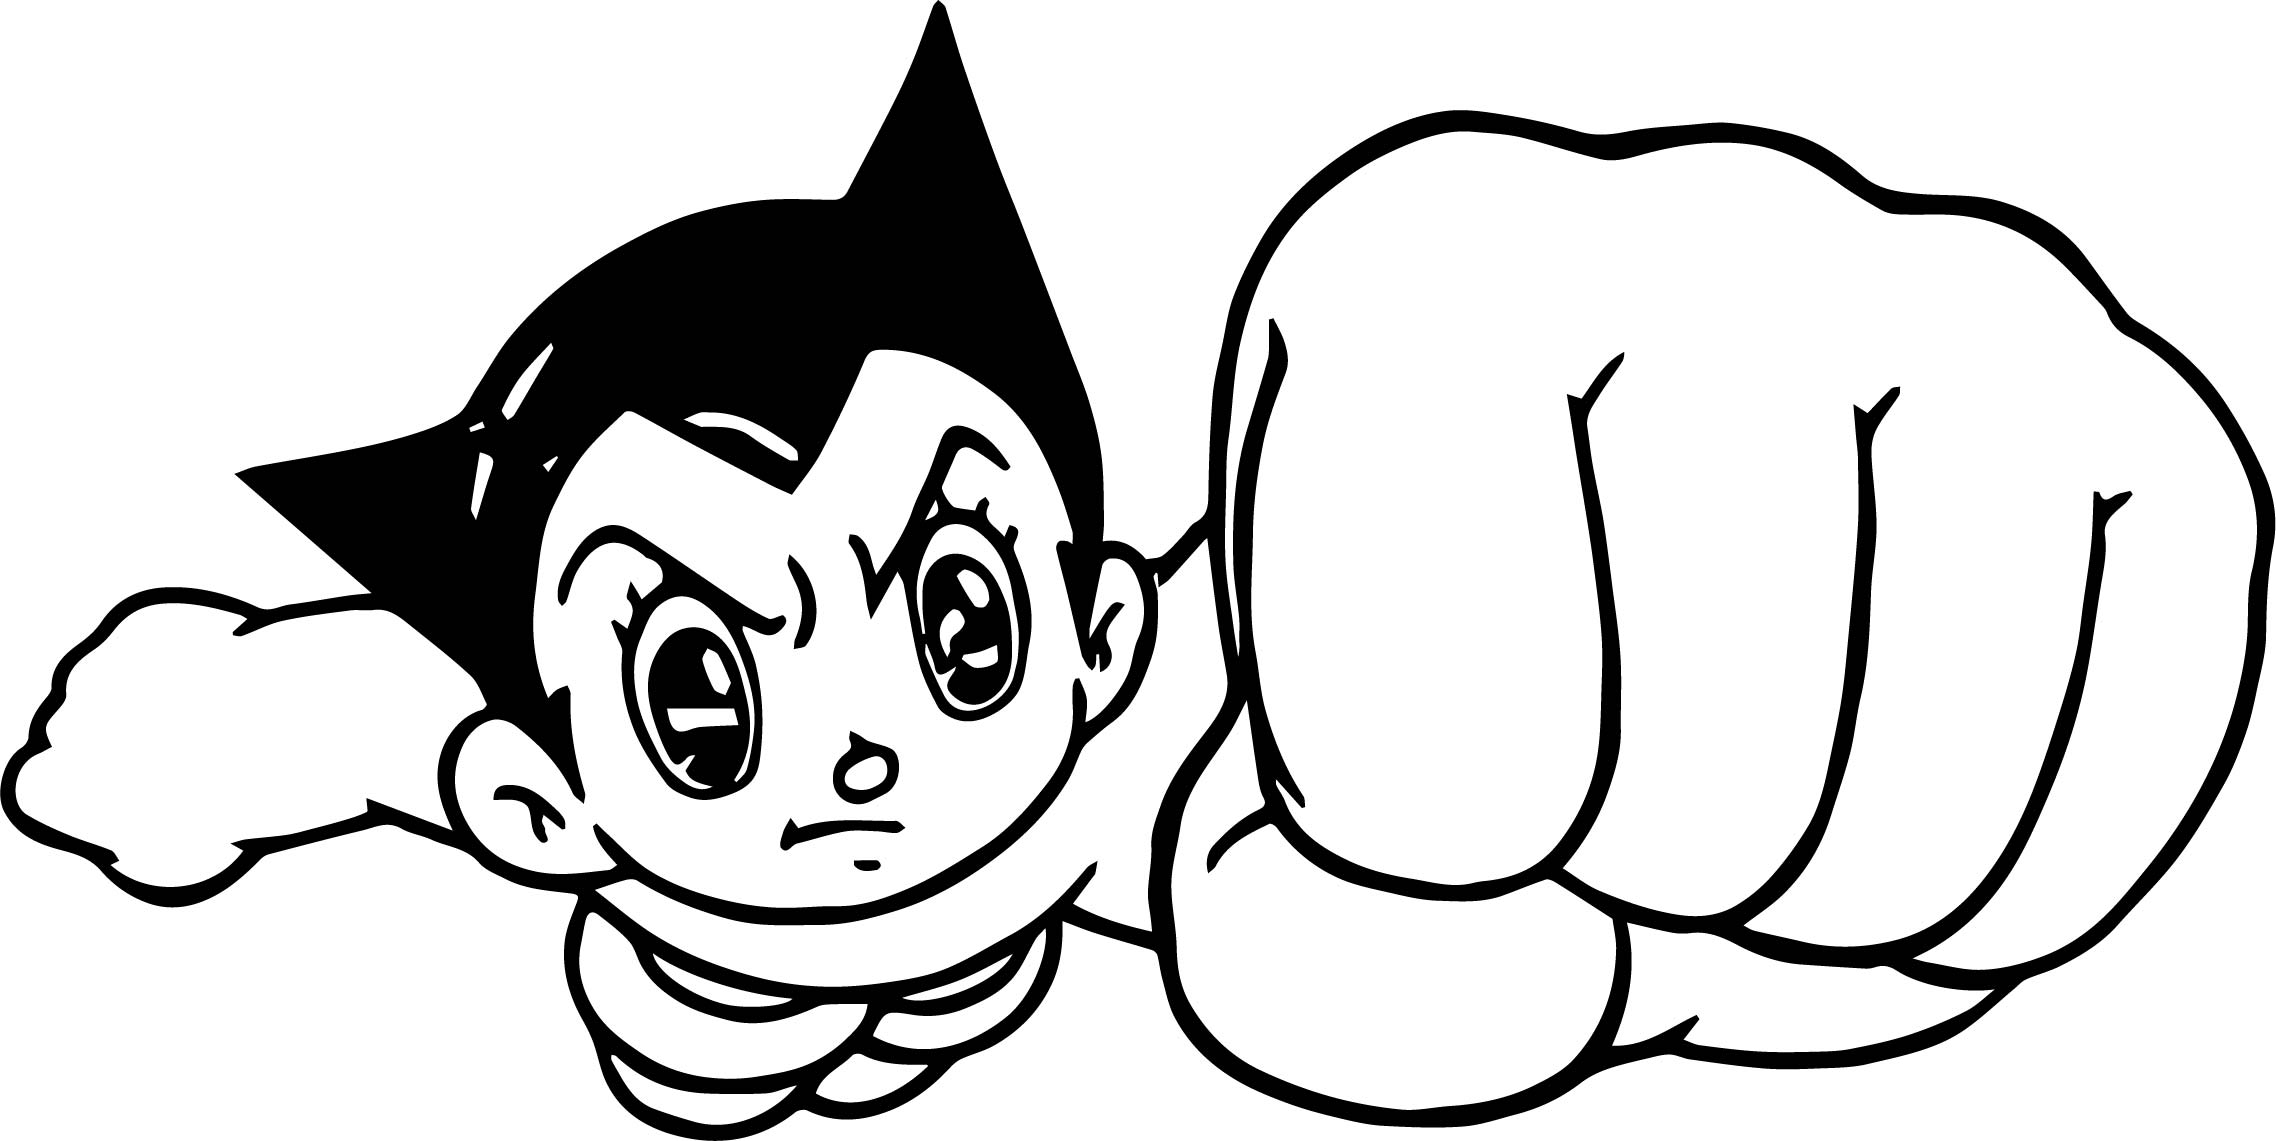 Astroboy Logo T Shirt Iron On Transfers Coloring Page